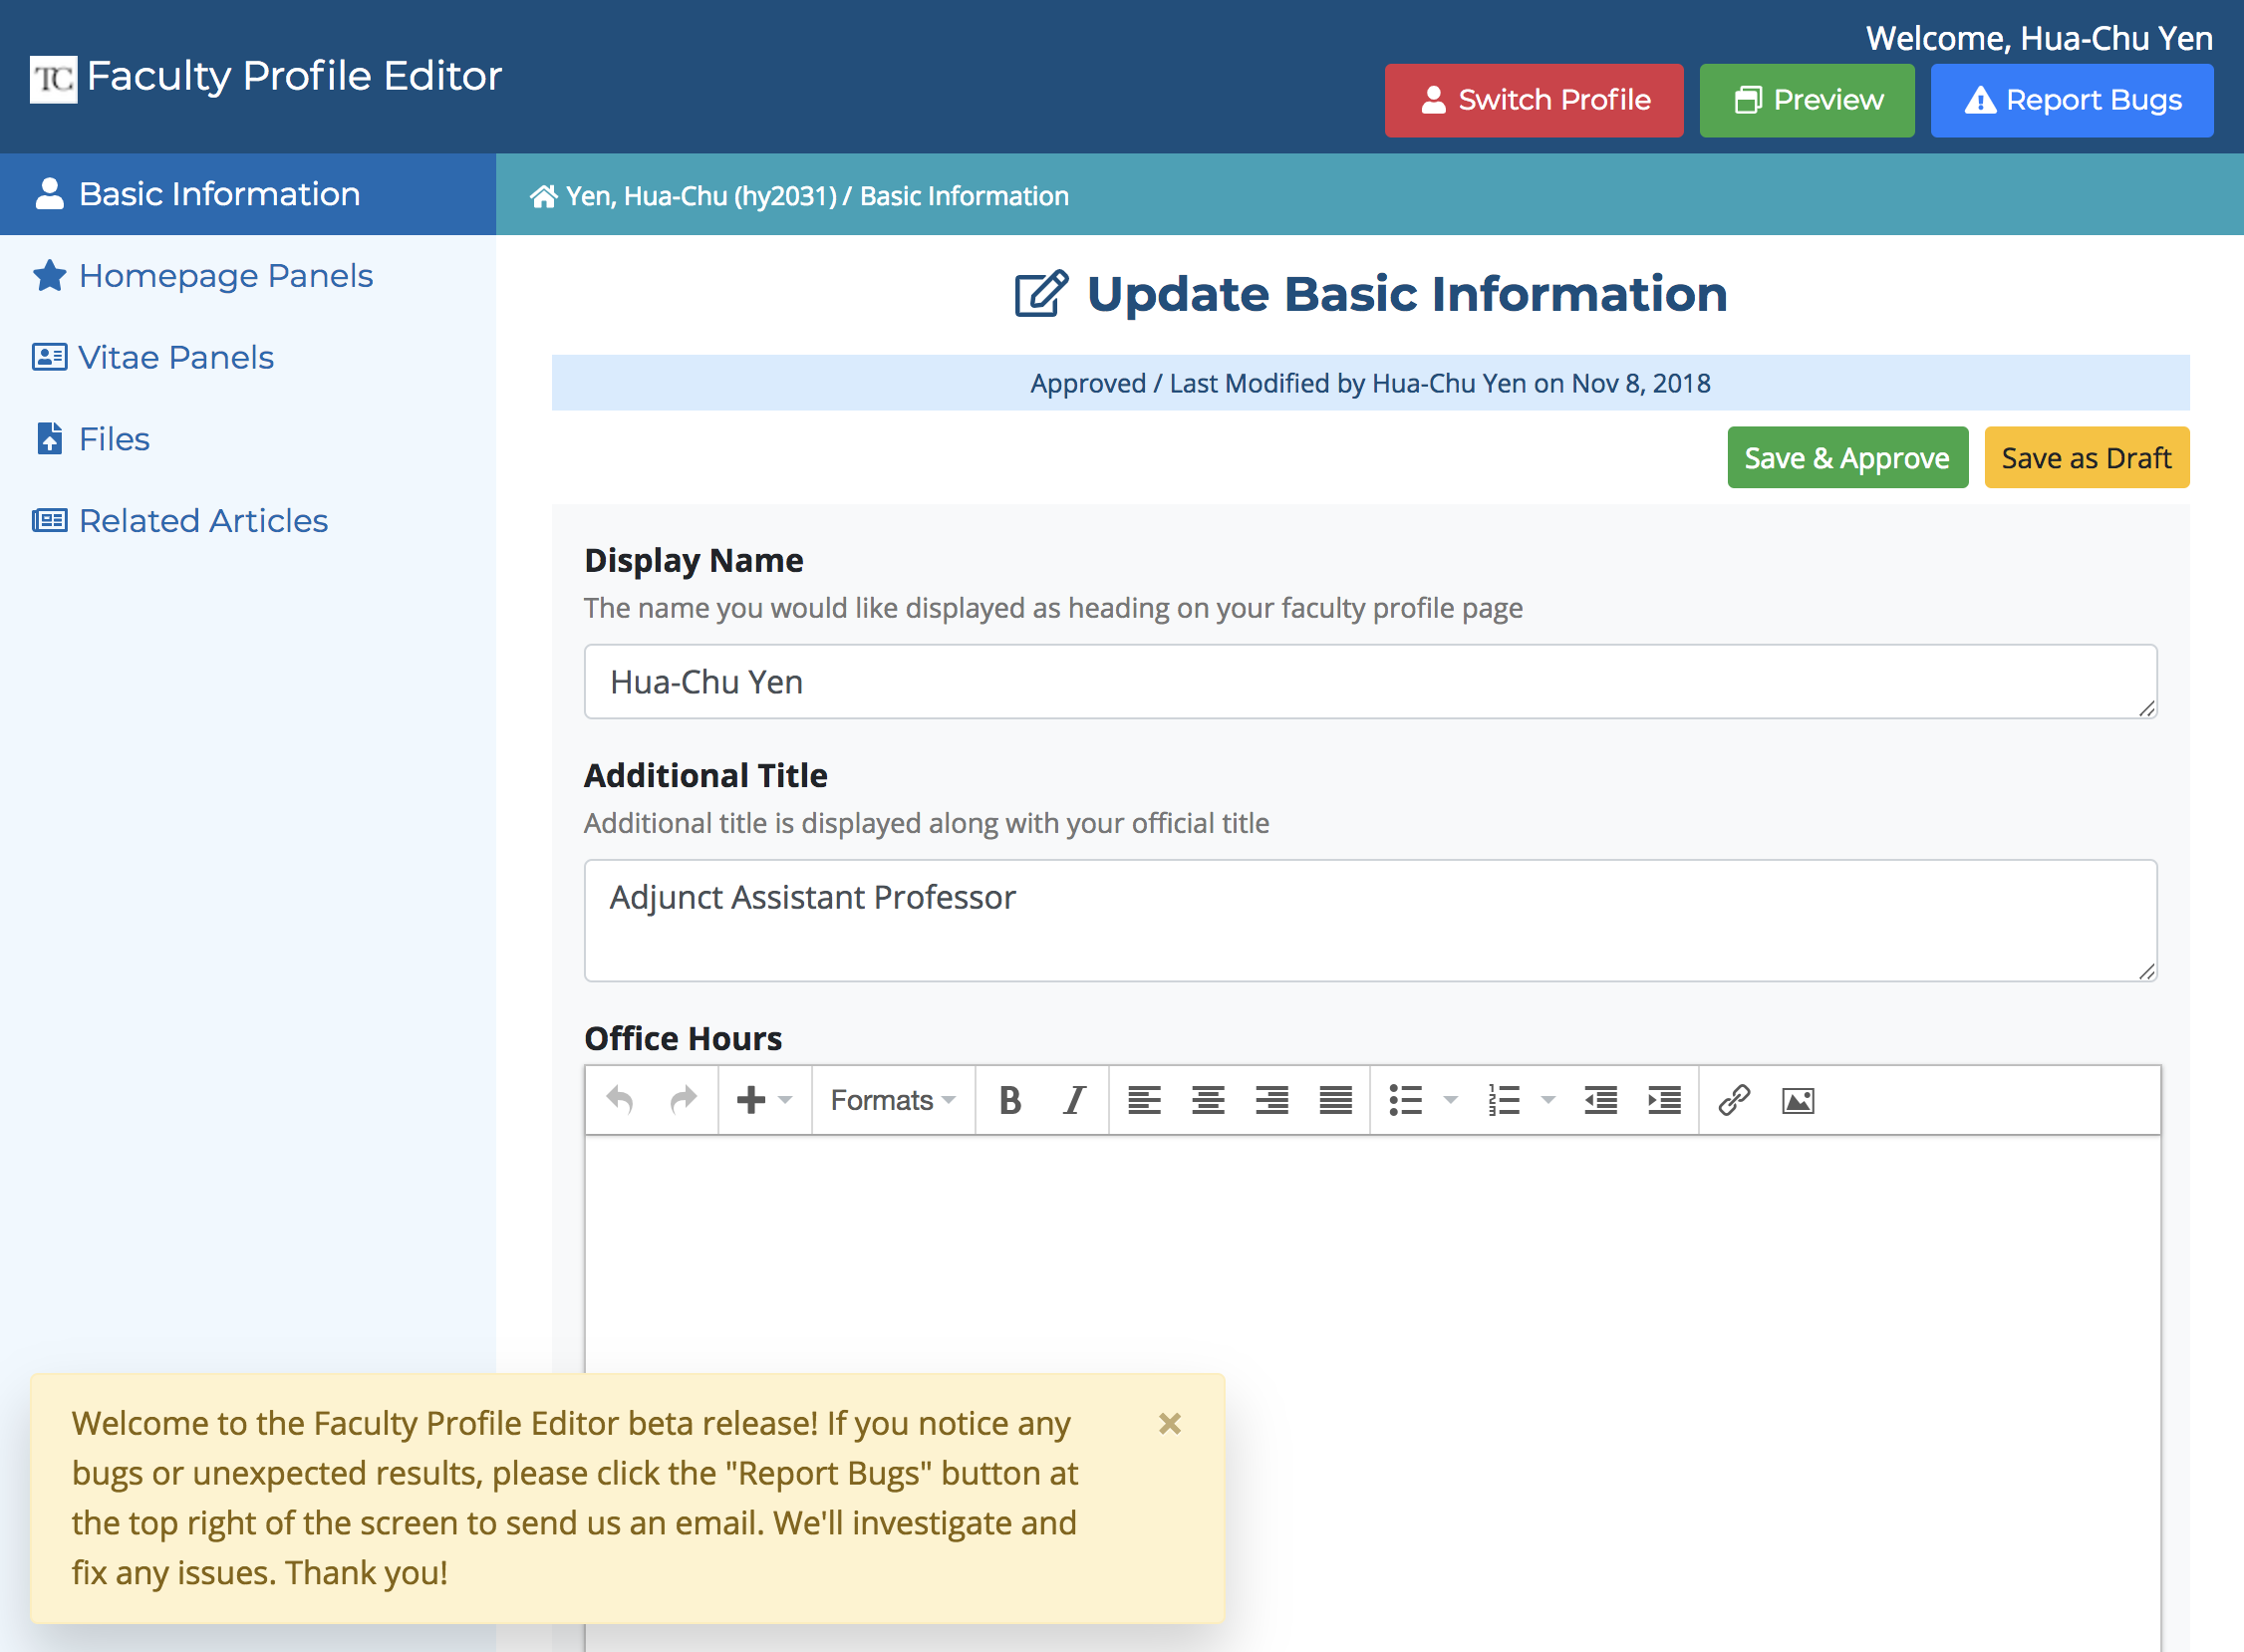 Screenshot of the basic information interface of the faculty profile editor tool